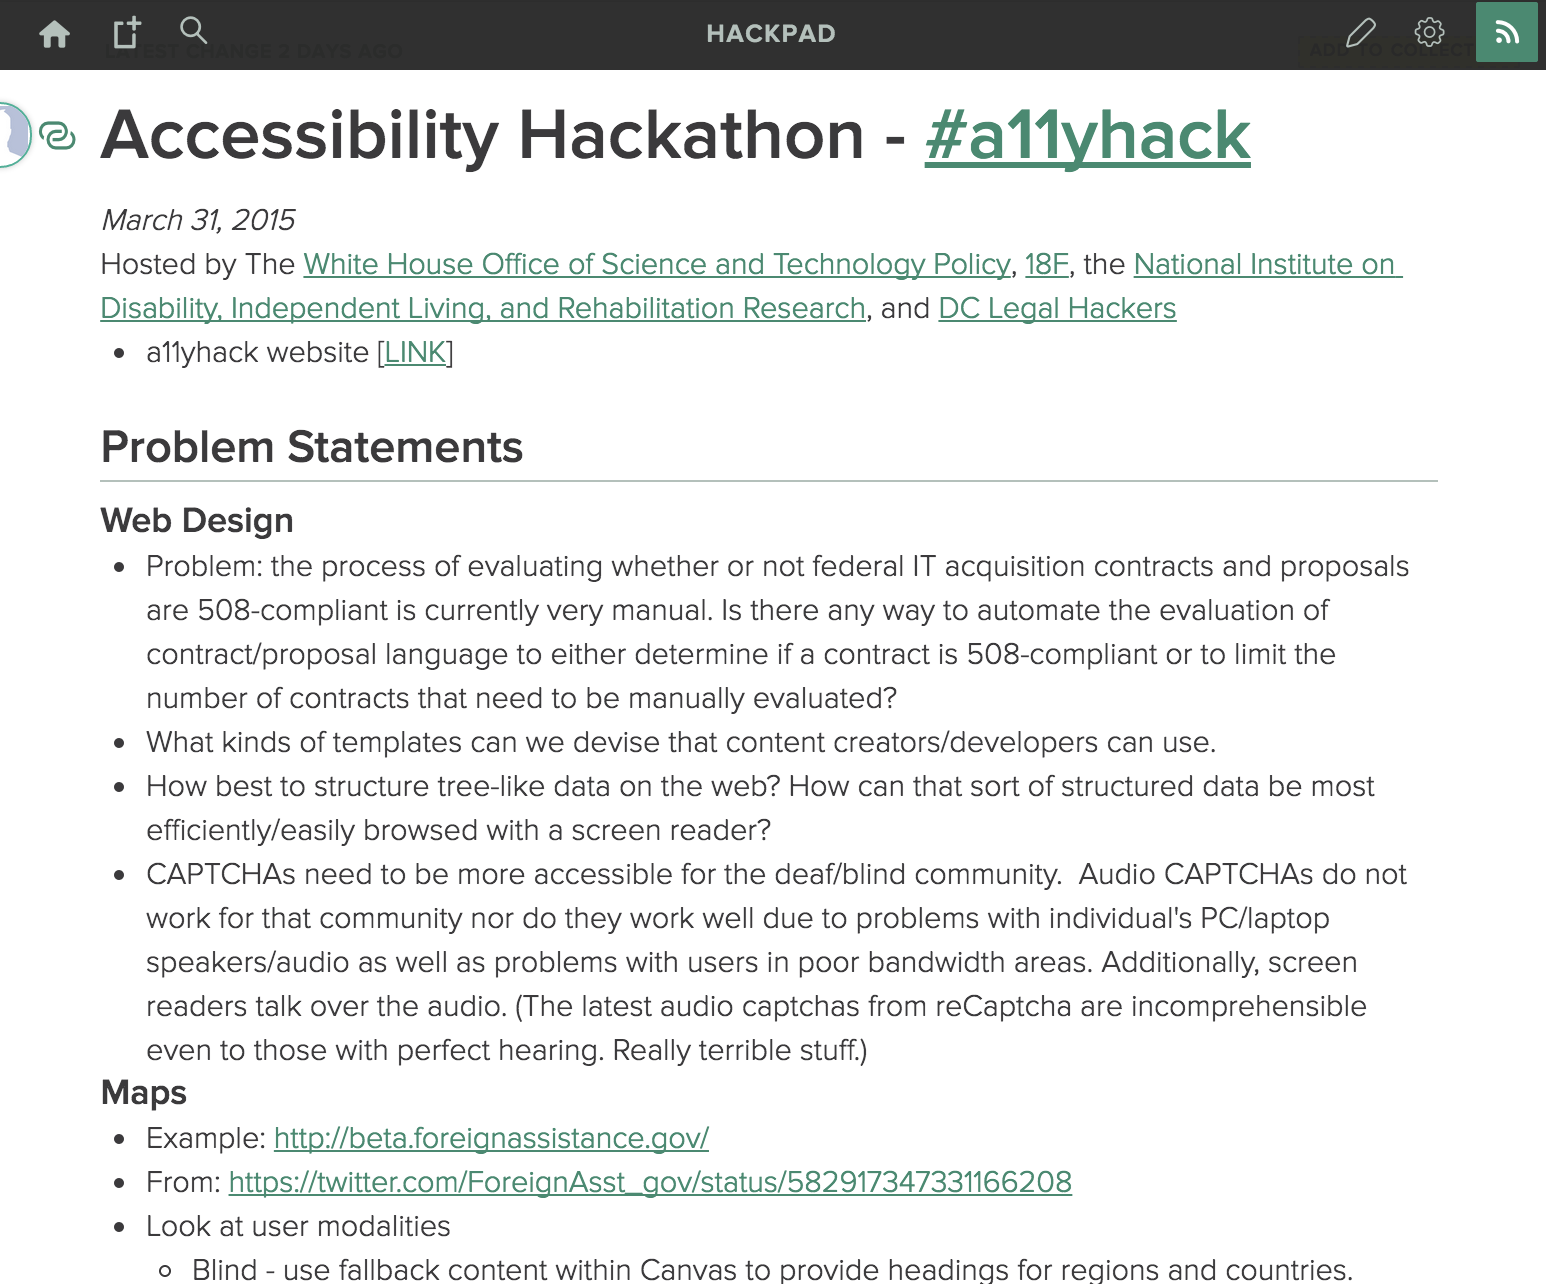 The hackpad, we've archived this as a markdown file on the hackathon's website. Click this link to read the contents.